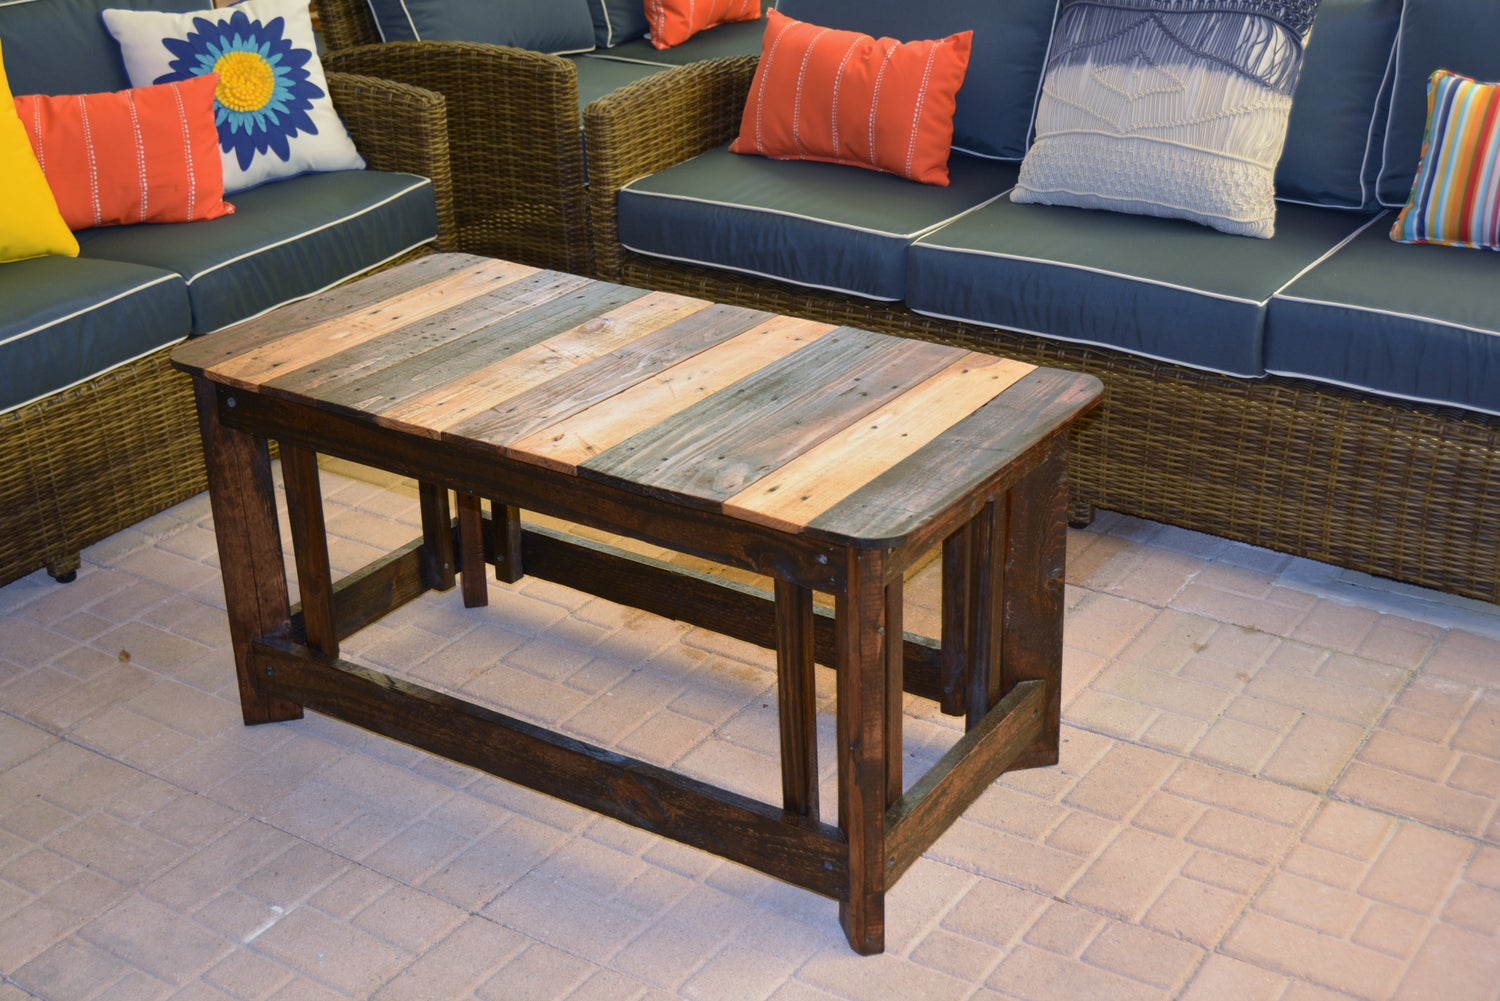 Image of Multi Stained Coffee Table